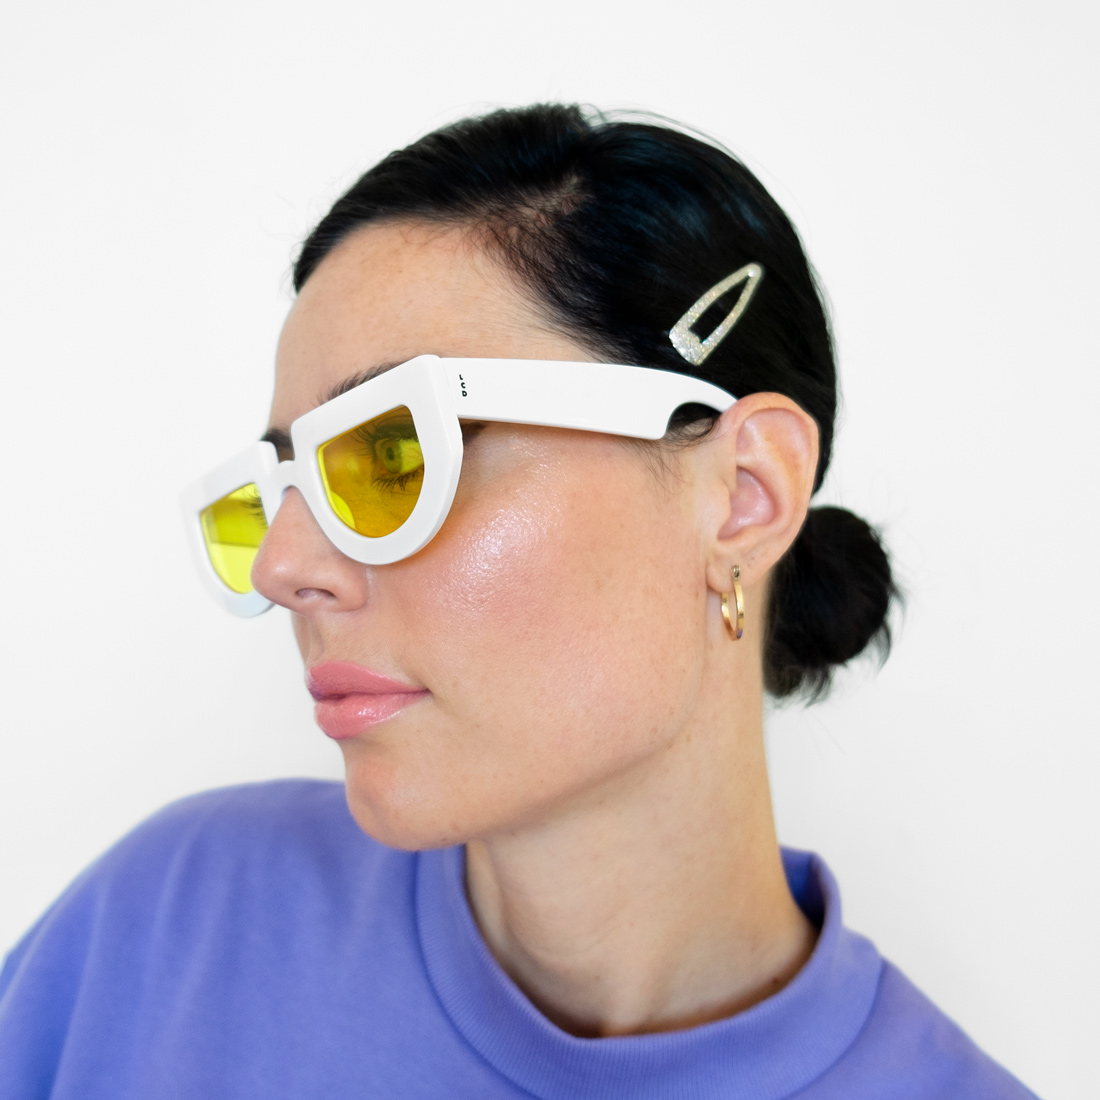 LCDglasses_yellow1